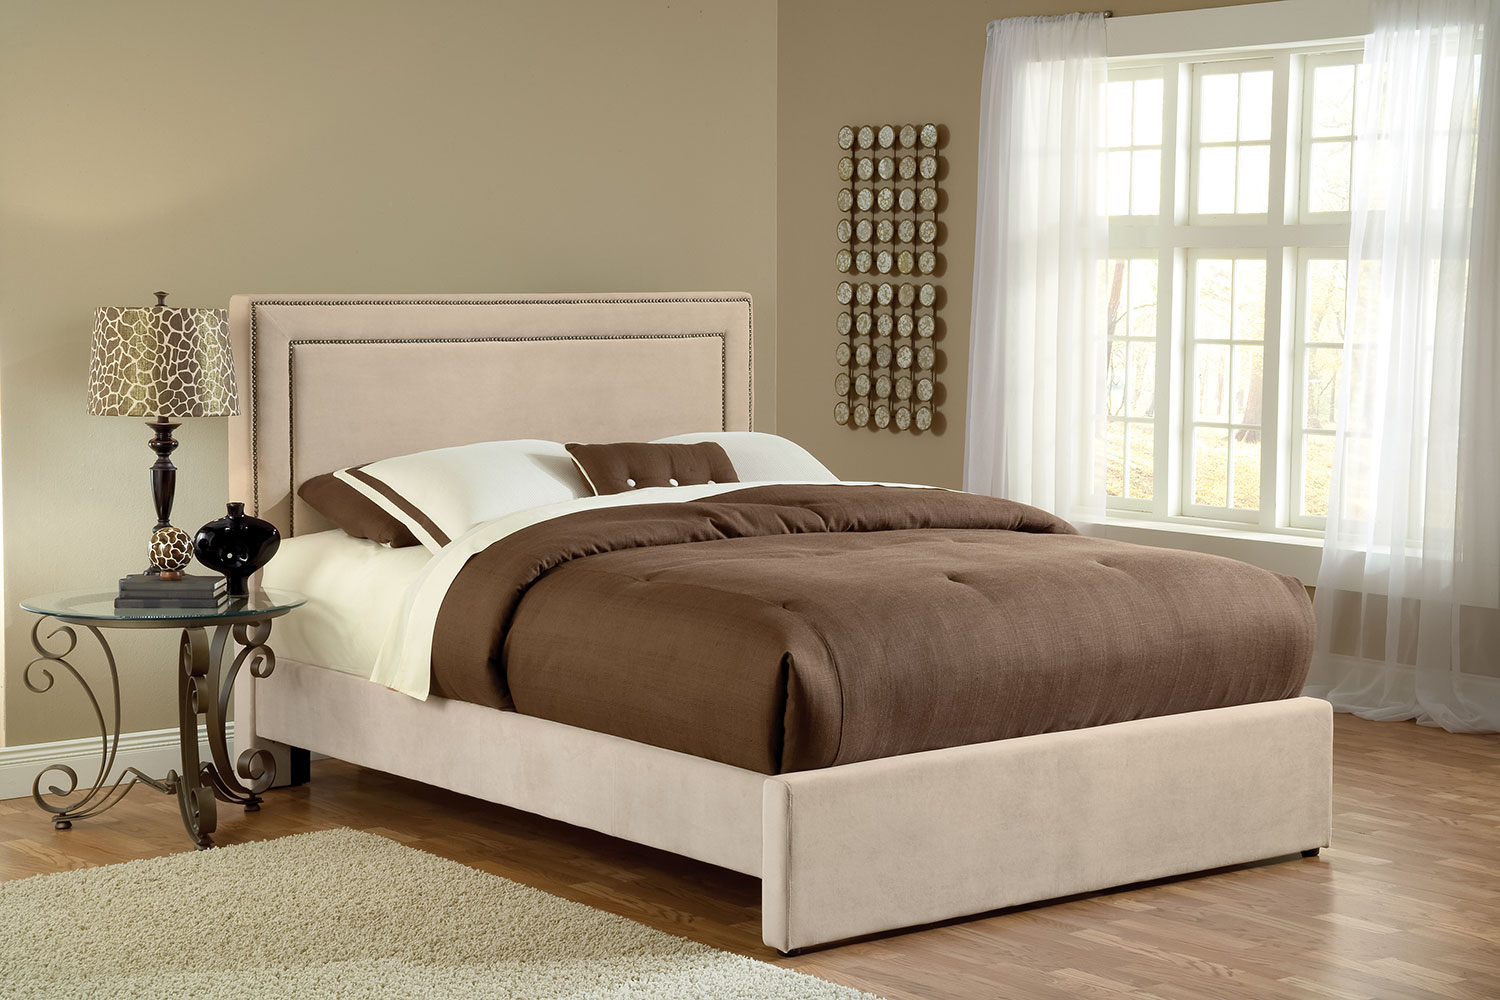 Amber Queen Bed - Beige